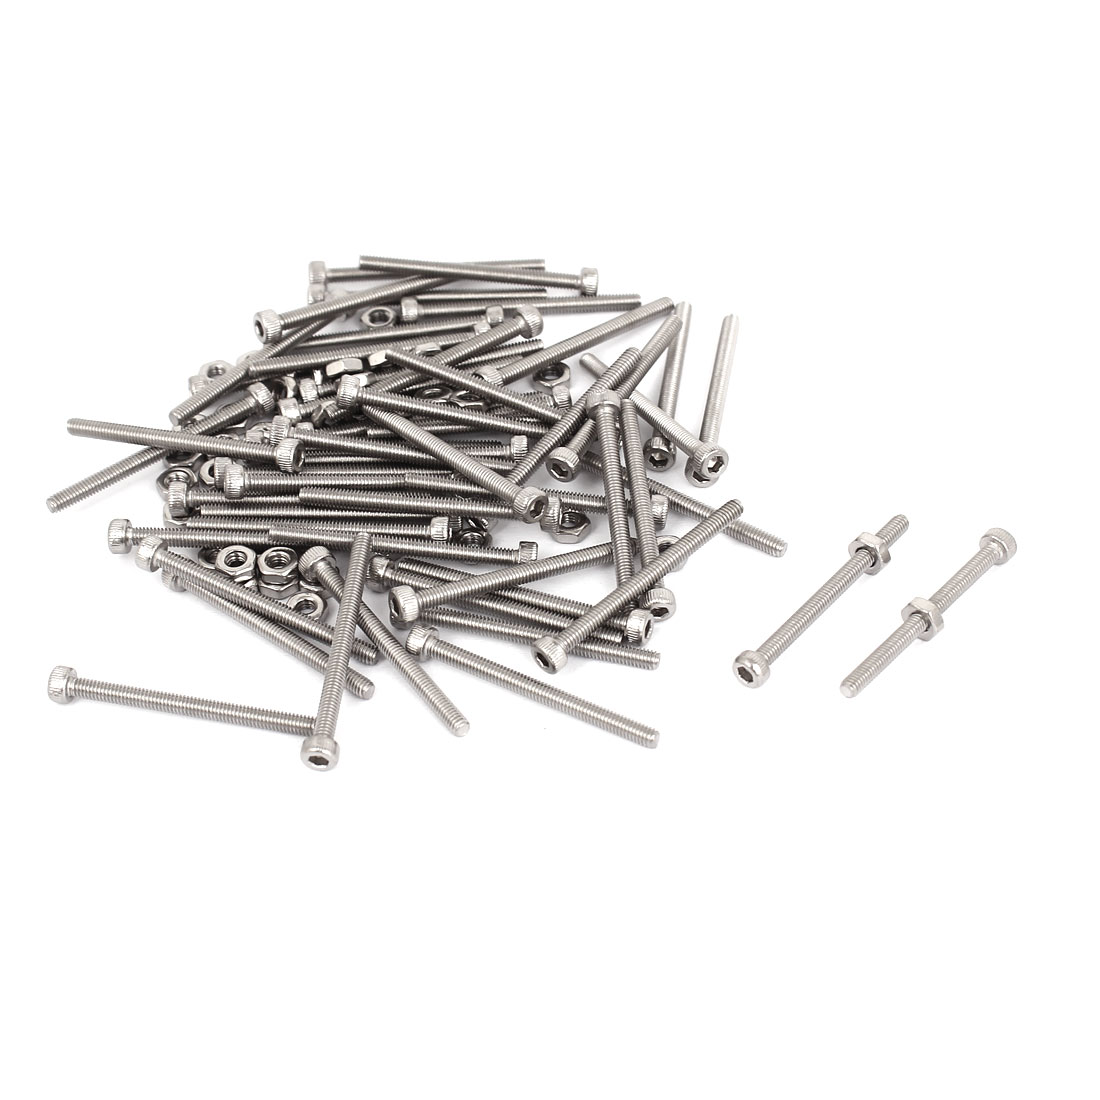 M2.5x30mm Stainless Steel Hex Socket Head Knurled Cap Screws Bolts Nut Set 50Pcs